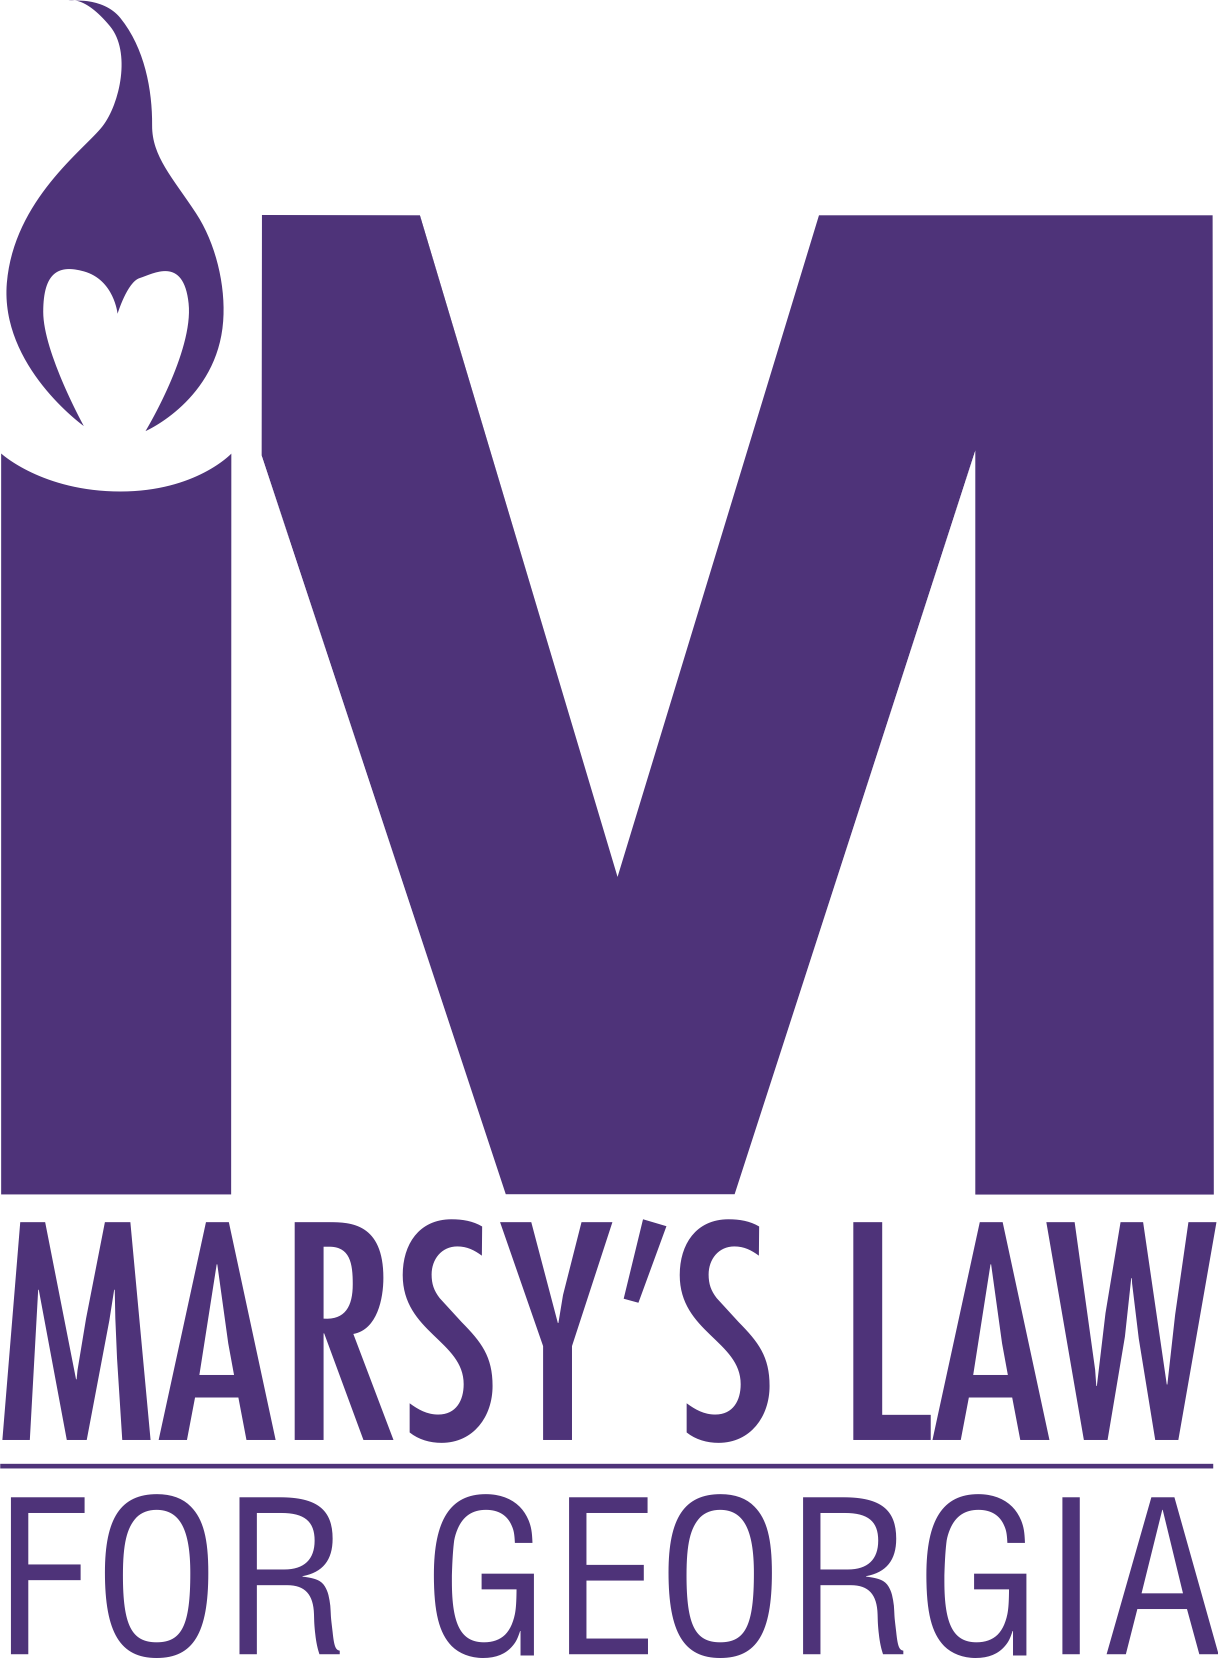 Marsy's Law for Georgia